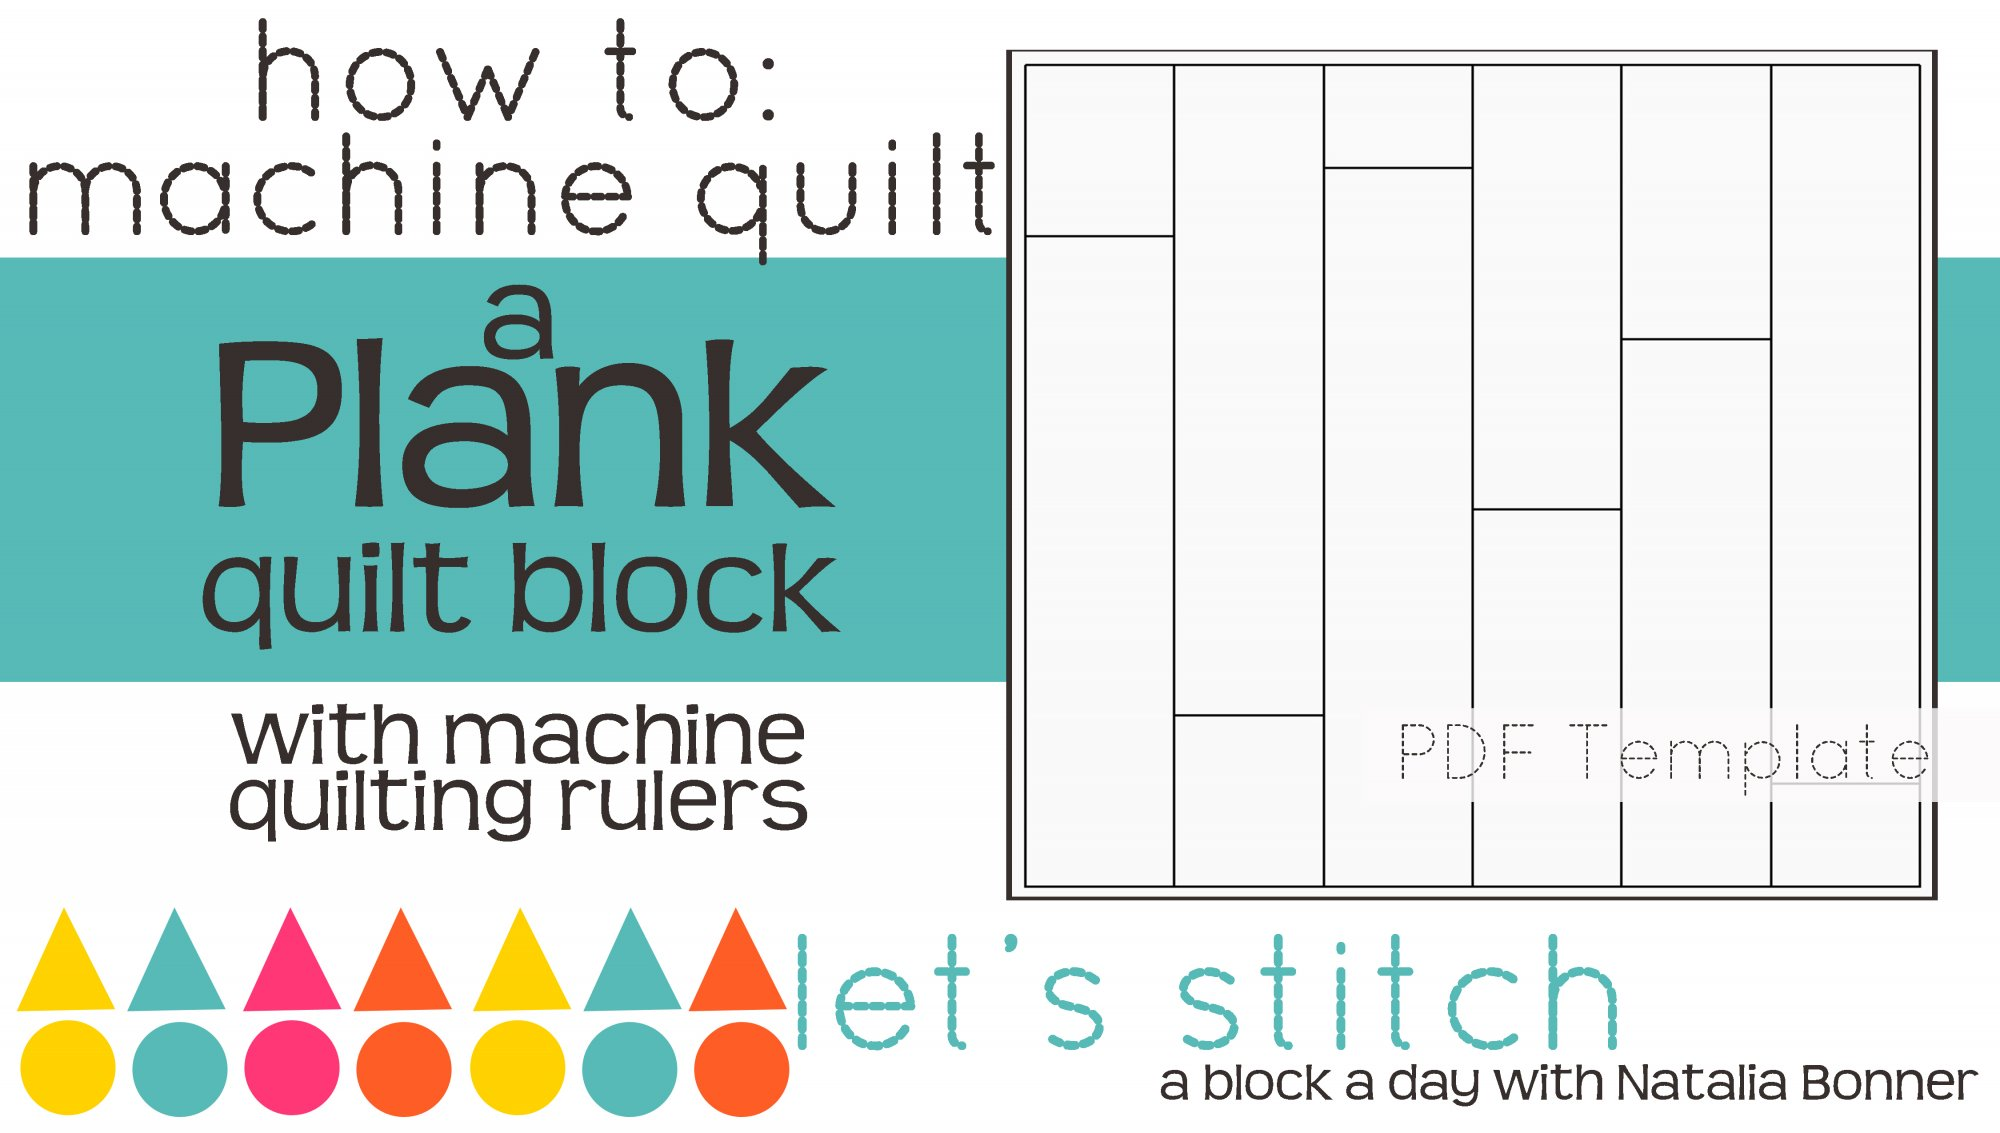 Let's Stitch - A Block a Day With Natalia Bonner - PDF - Plank